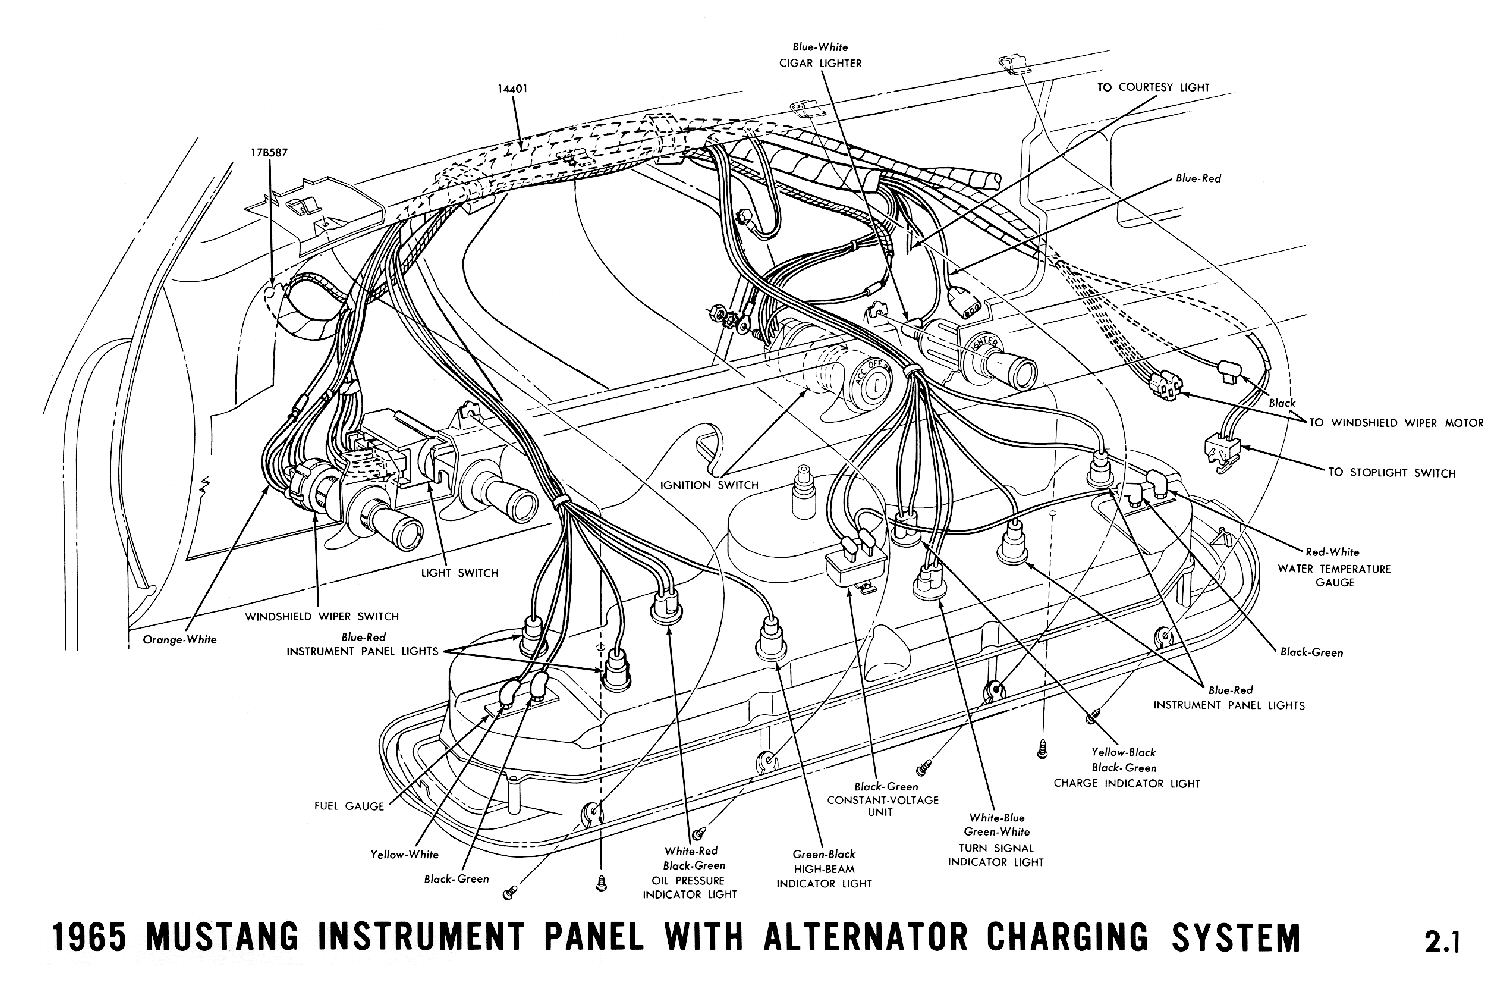 1965a 1965 mustang wiring diagrams average joe restoration 1965 Ford Mustang at honlapkeszites.co